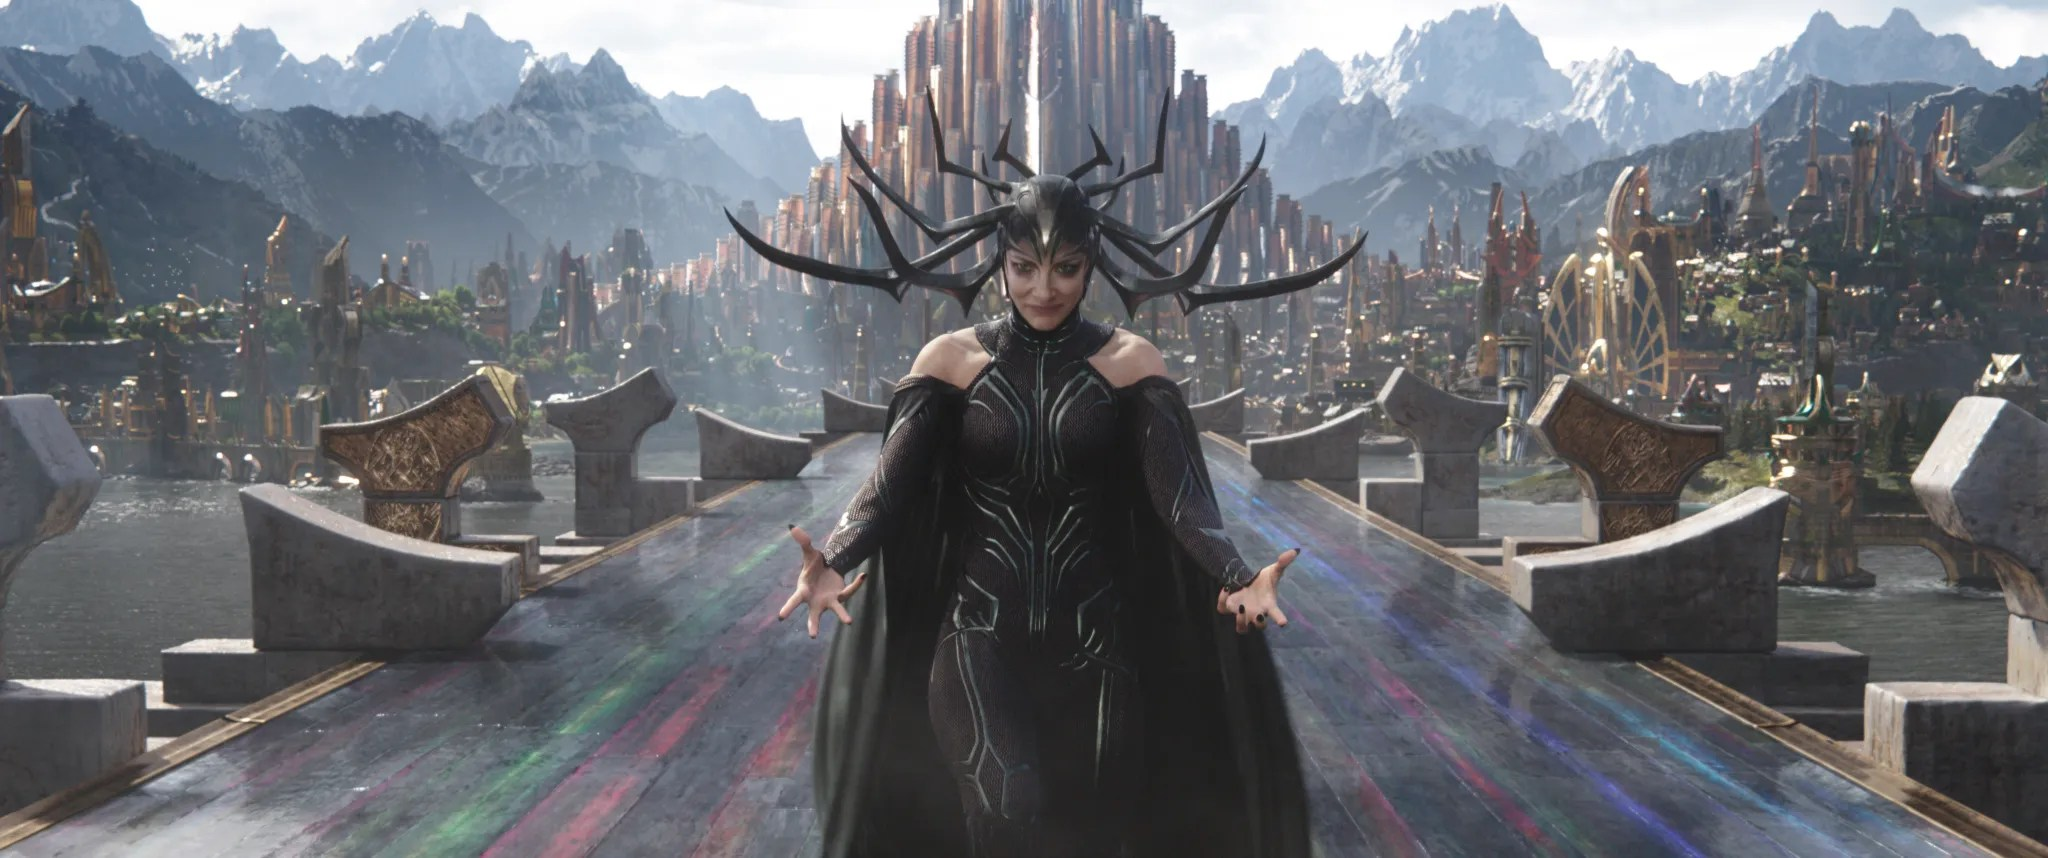 Thor: Ragnarok Review – Nerd With An Afro